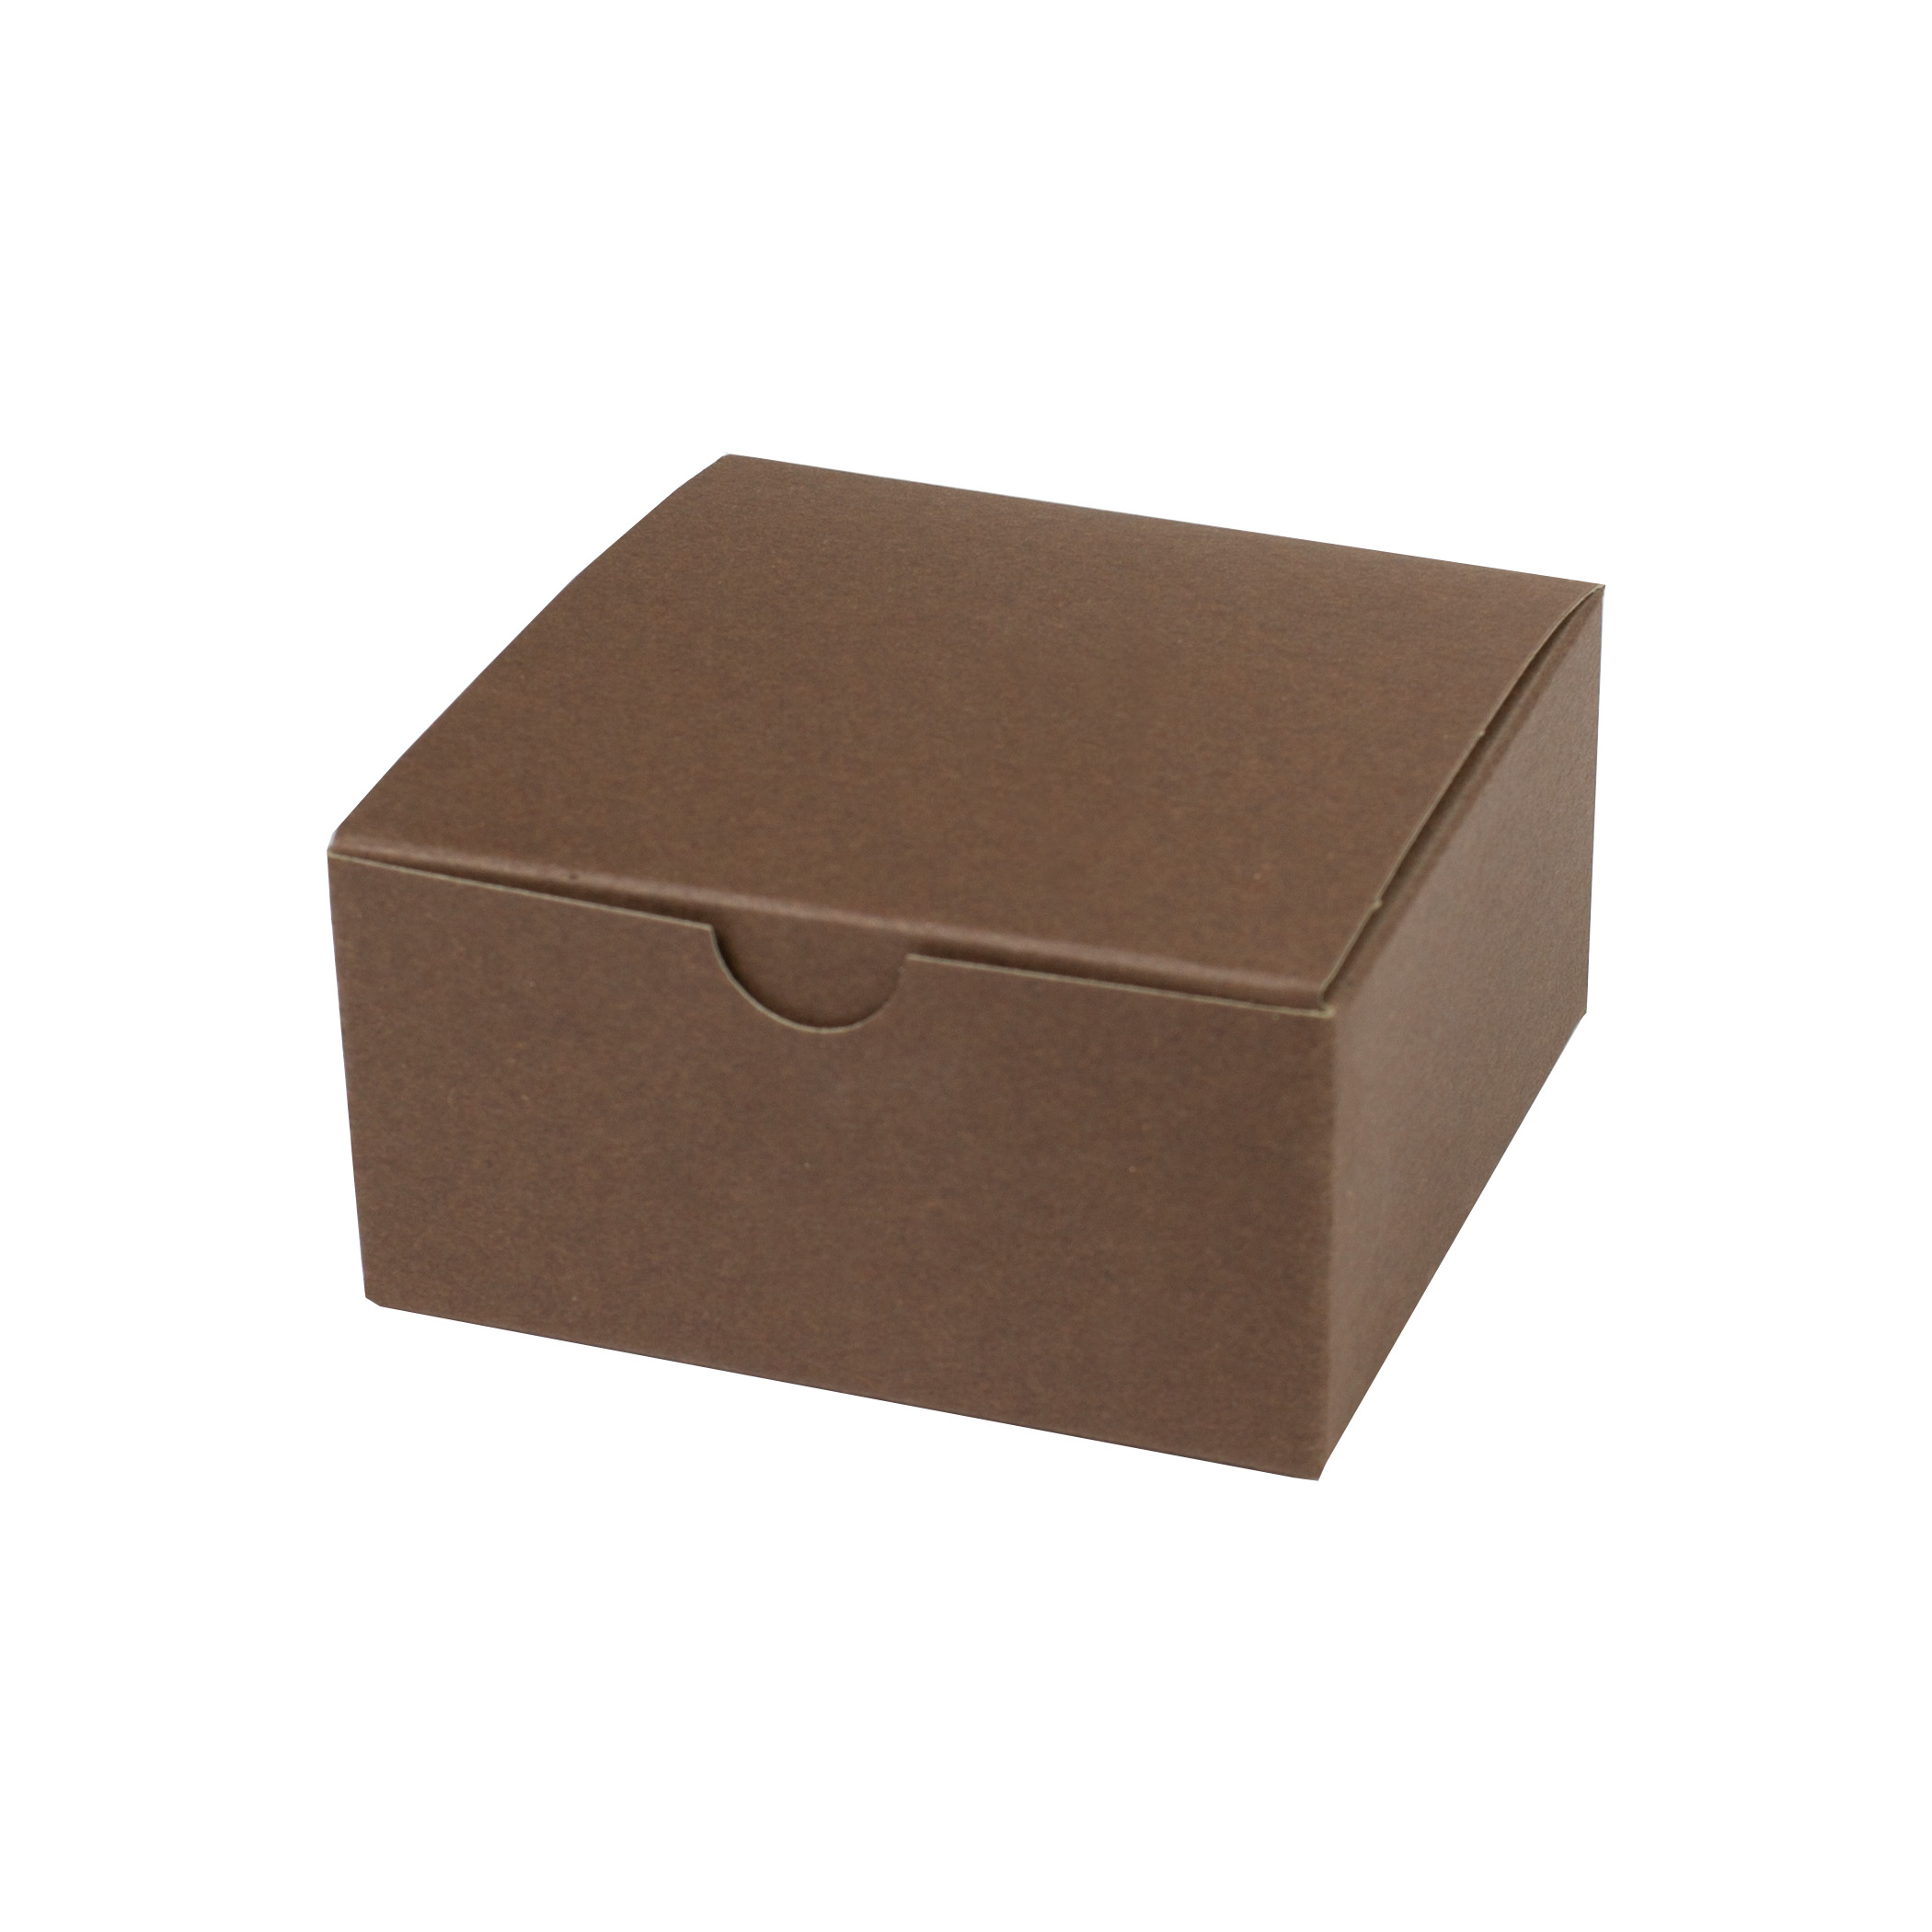 4 x 4 x 2 COCOA TINTED TUCK-TOP GIFT BOXES